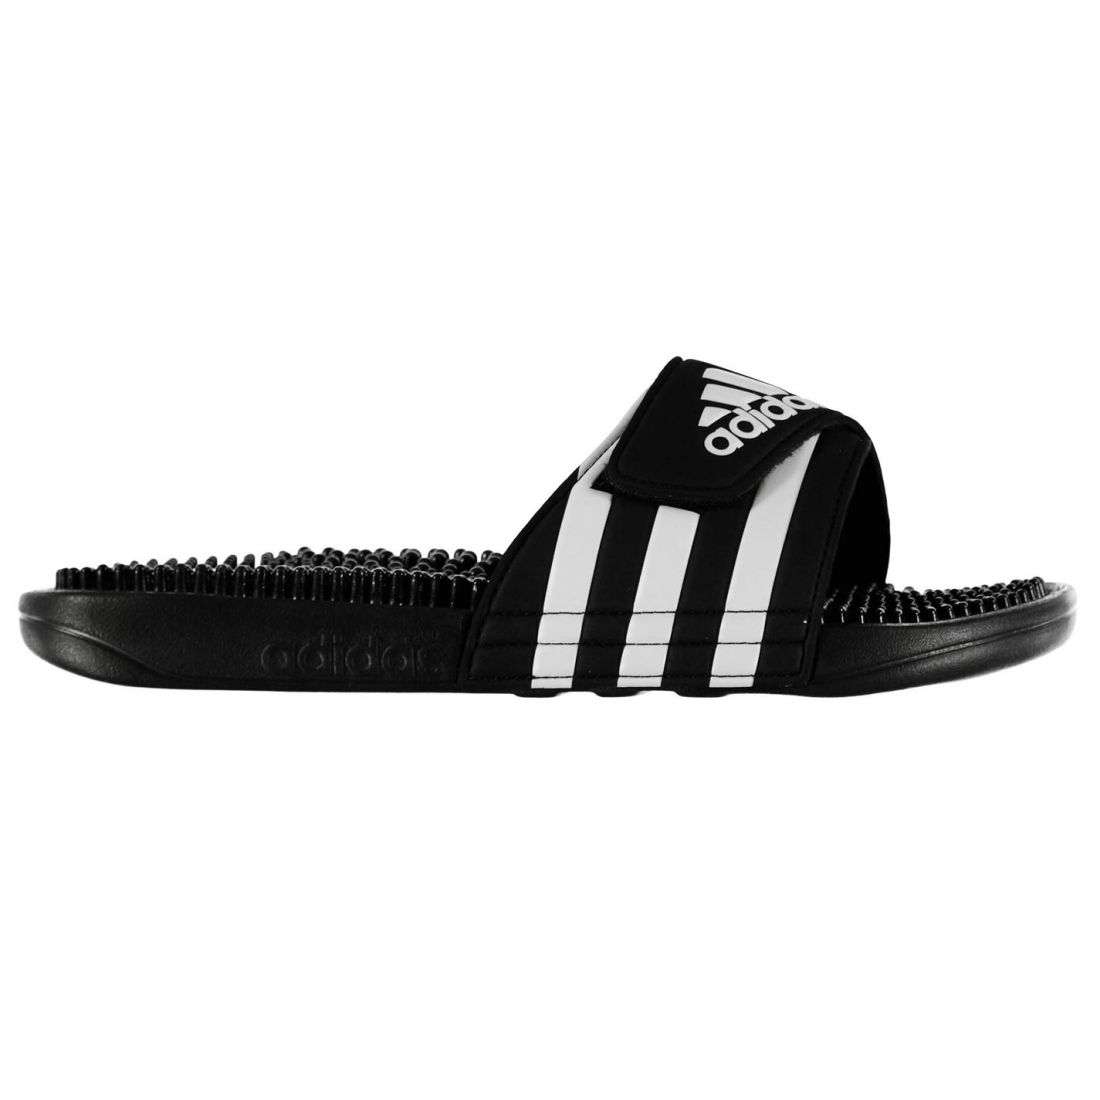 24e02bac4423a8 Image is loading adidas-Mens-Adissage-Slides-Sandals-Massage-Footbed-Summer-